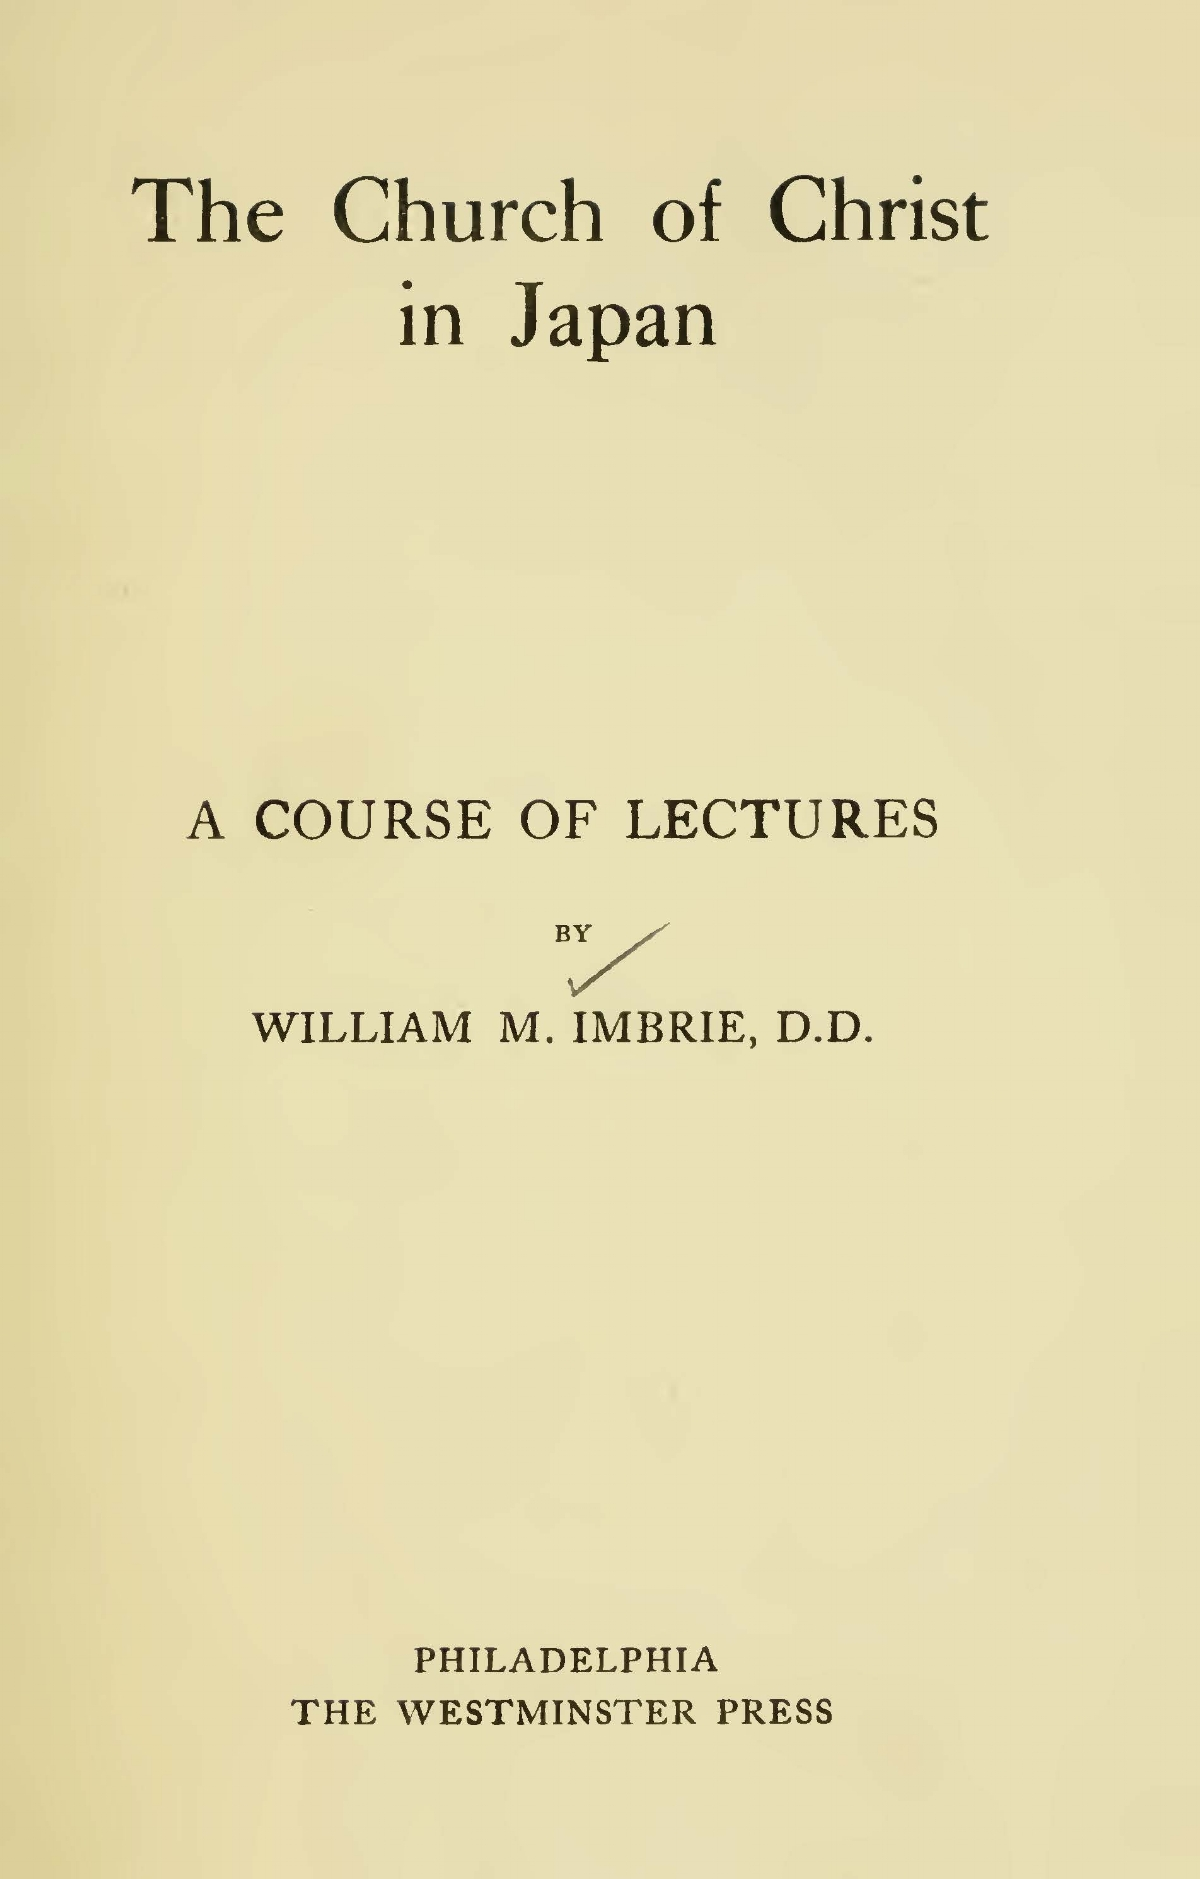 Imbrie, William, The Church of Christ in Japan Title Page.jpg